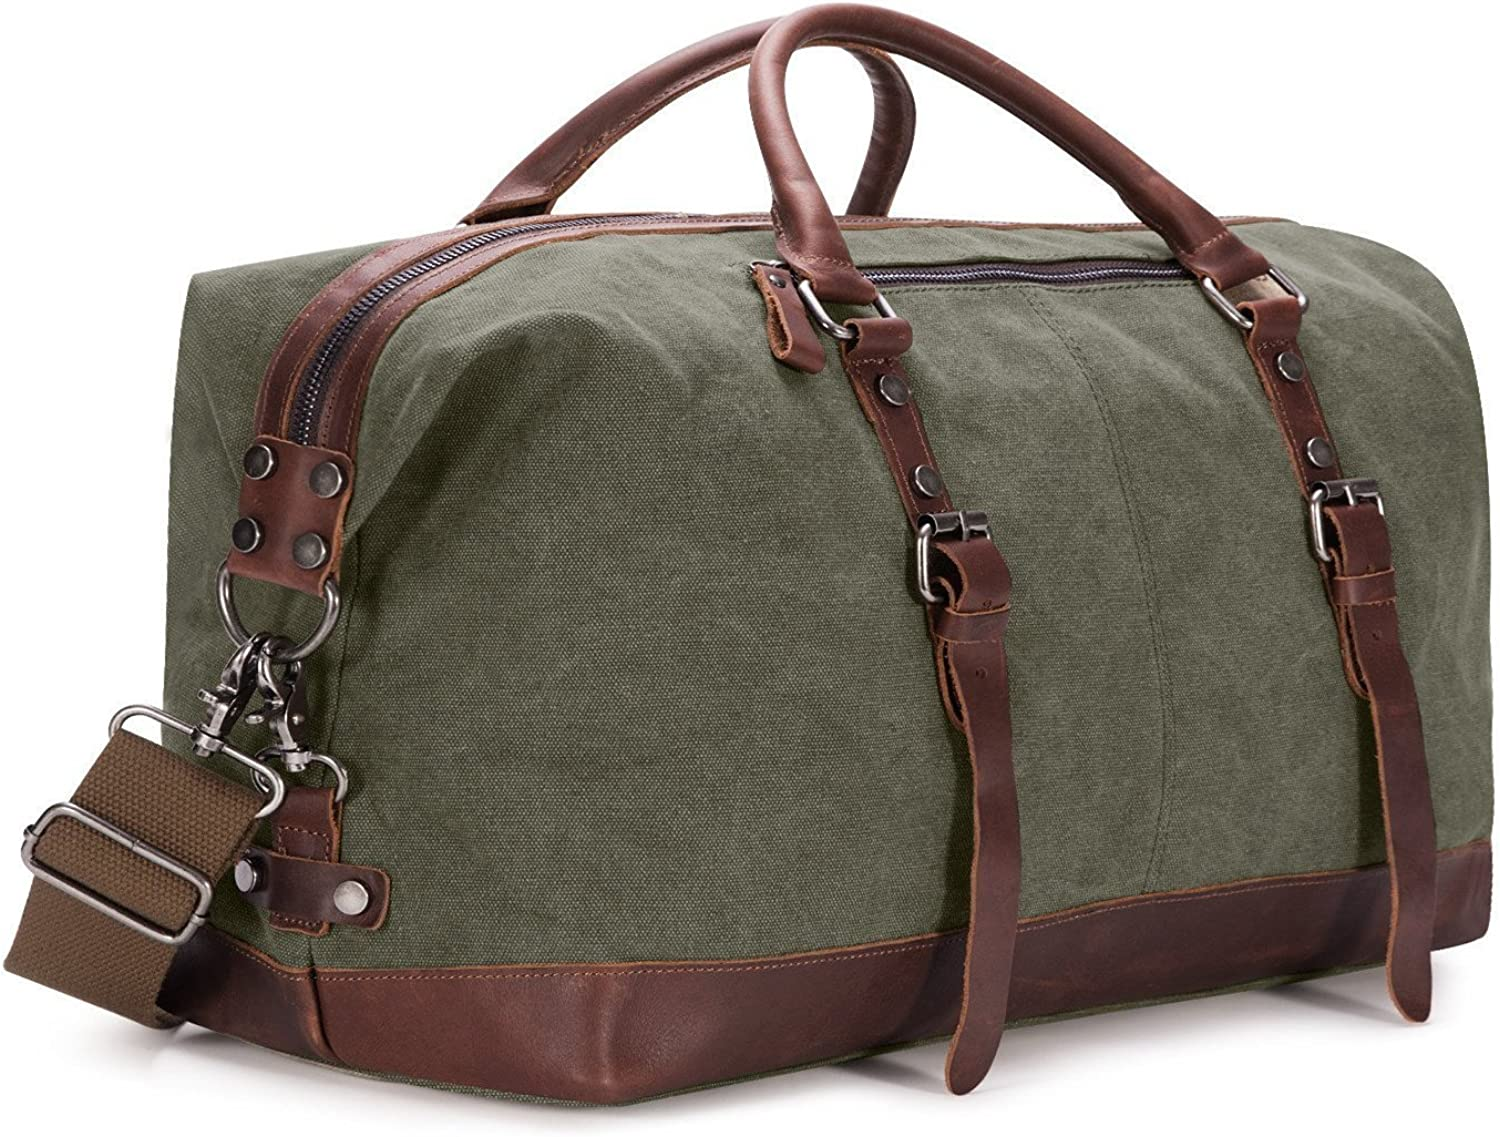 BAOSHA Canvas PU Leather Travel Tote Soldering Duffel Carry Super intense SALE Wee on Bag